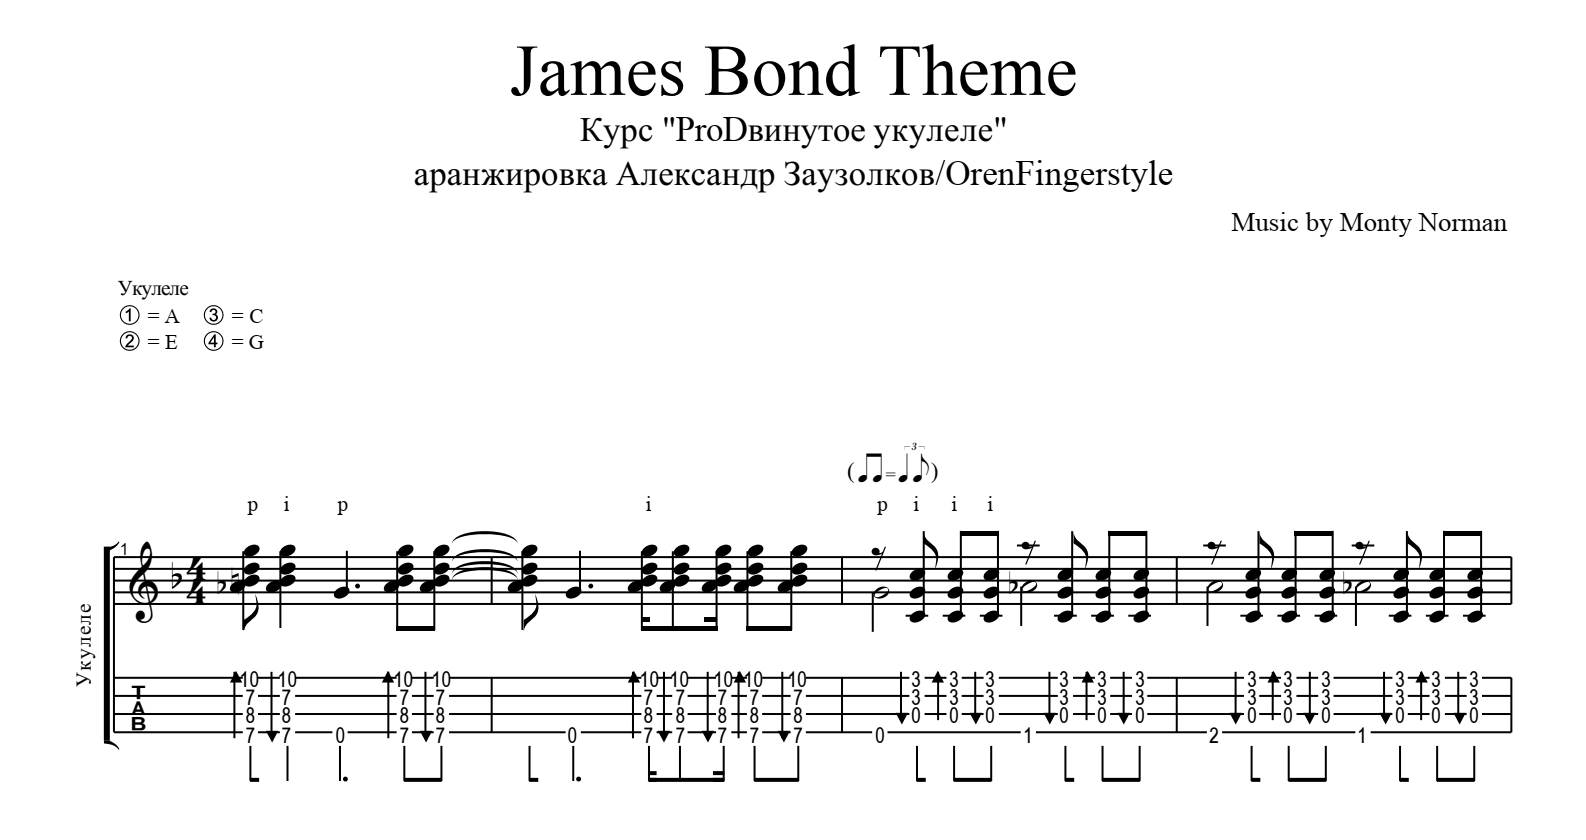 The James Bond Theme - Monty Norman